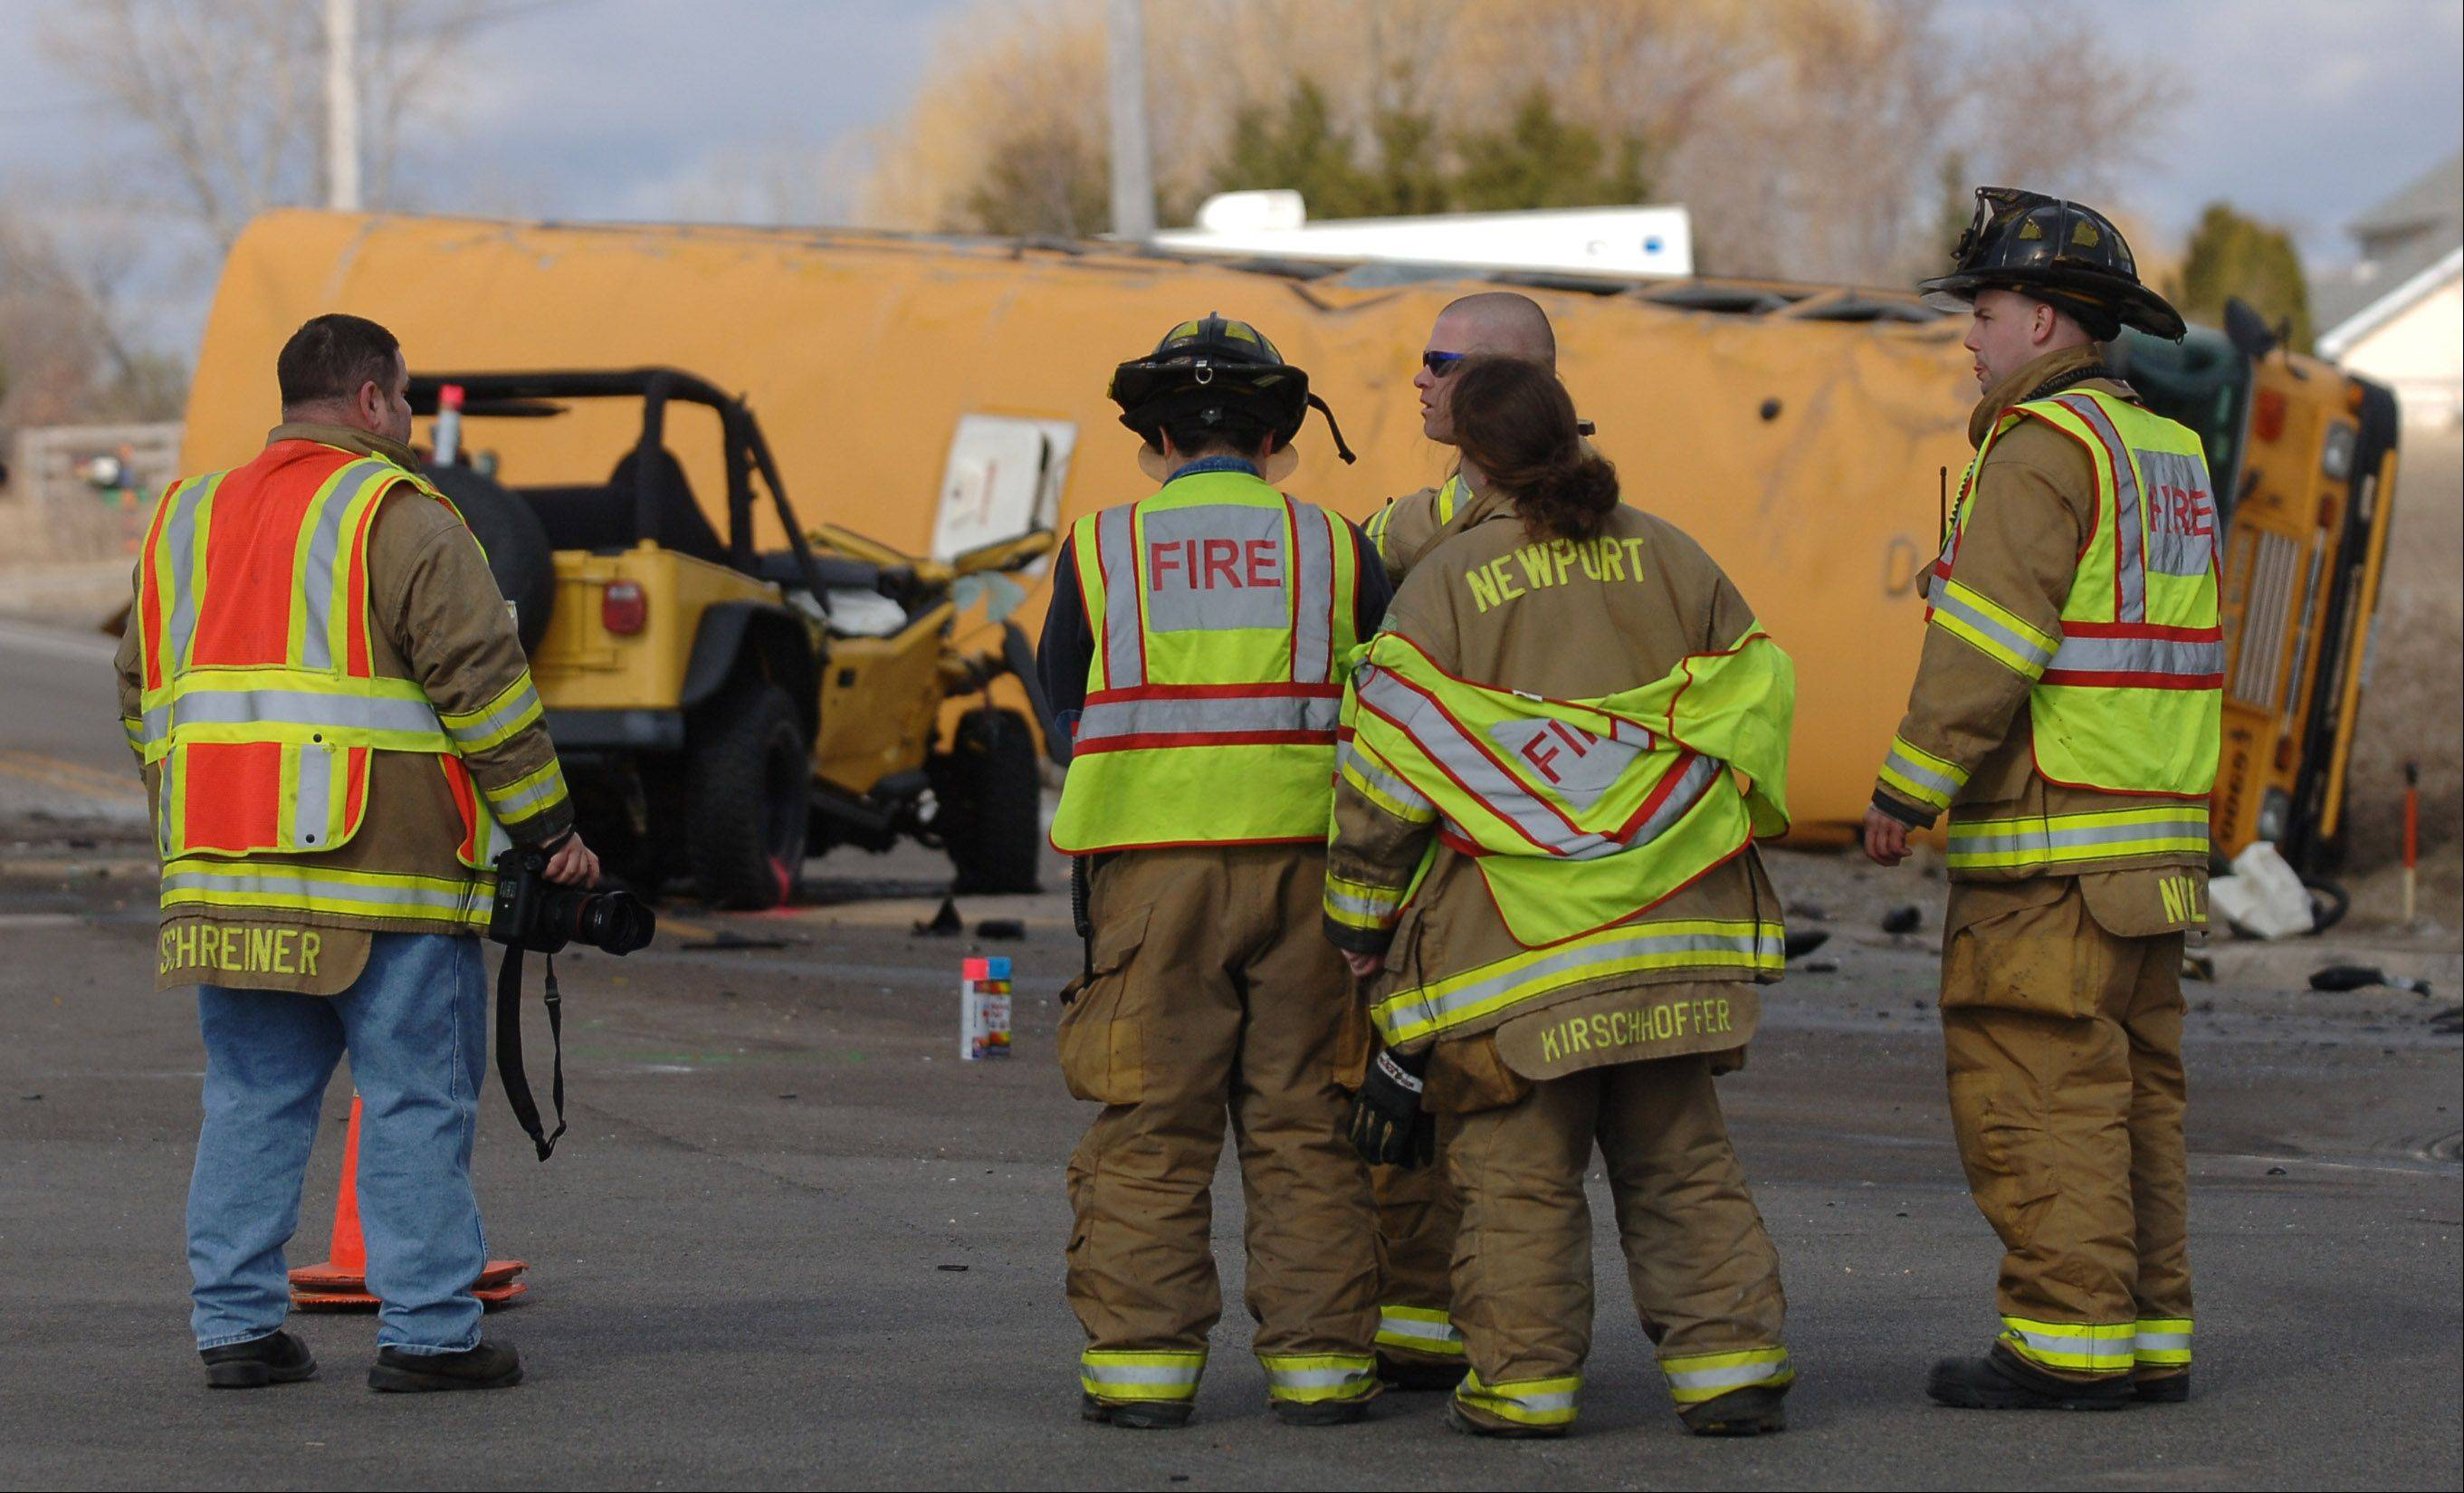 Firefighters at the scene of Friday morning's fatal crash at Route 173 and N. Kilbourne Road near Wadsworth.